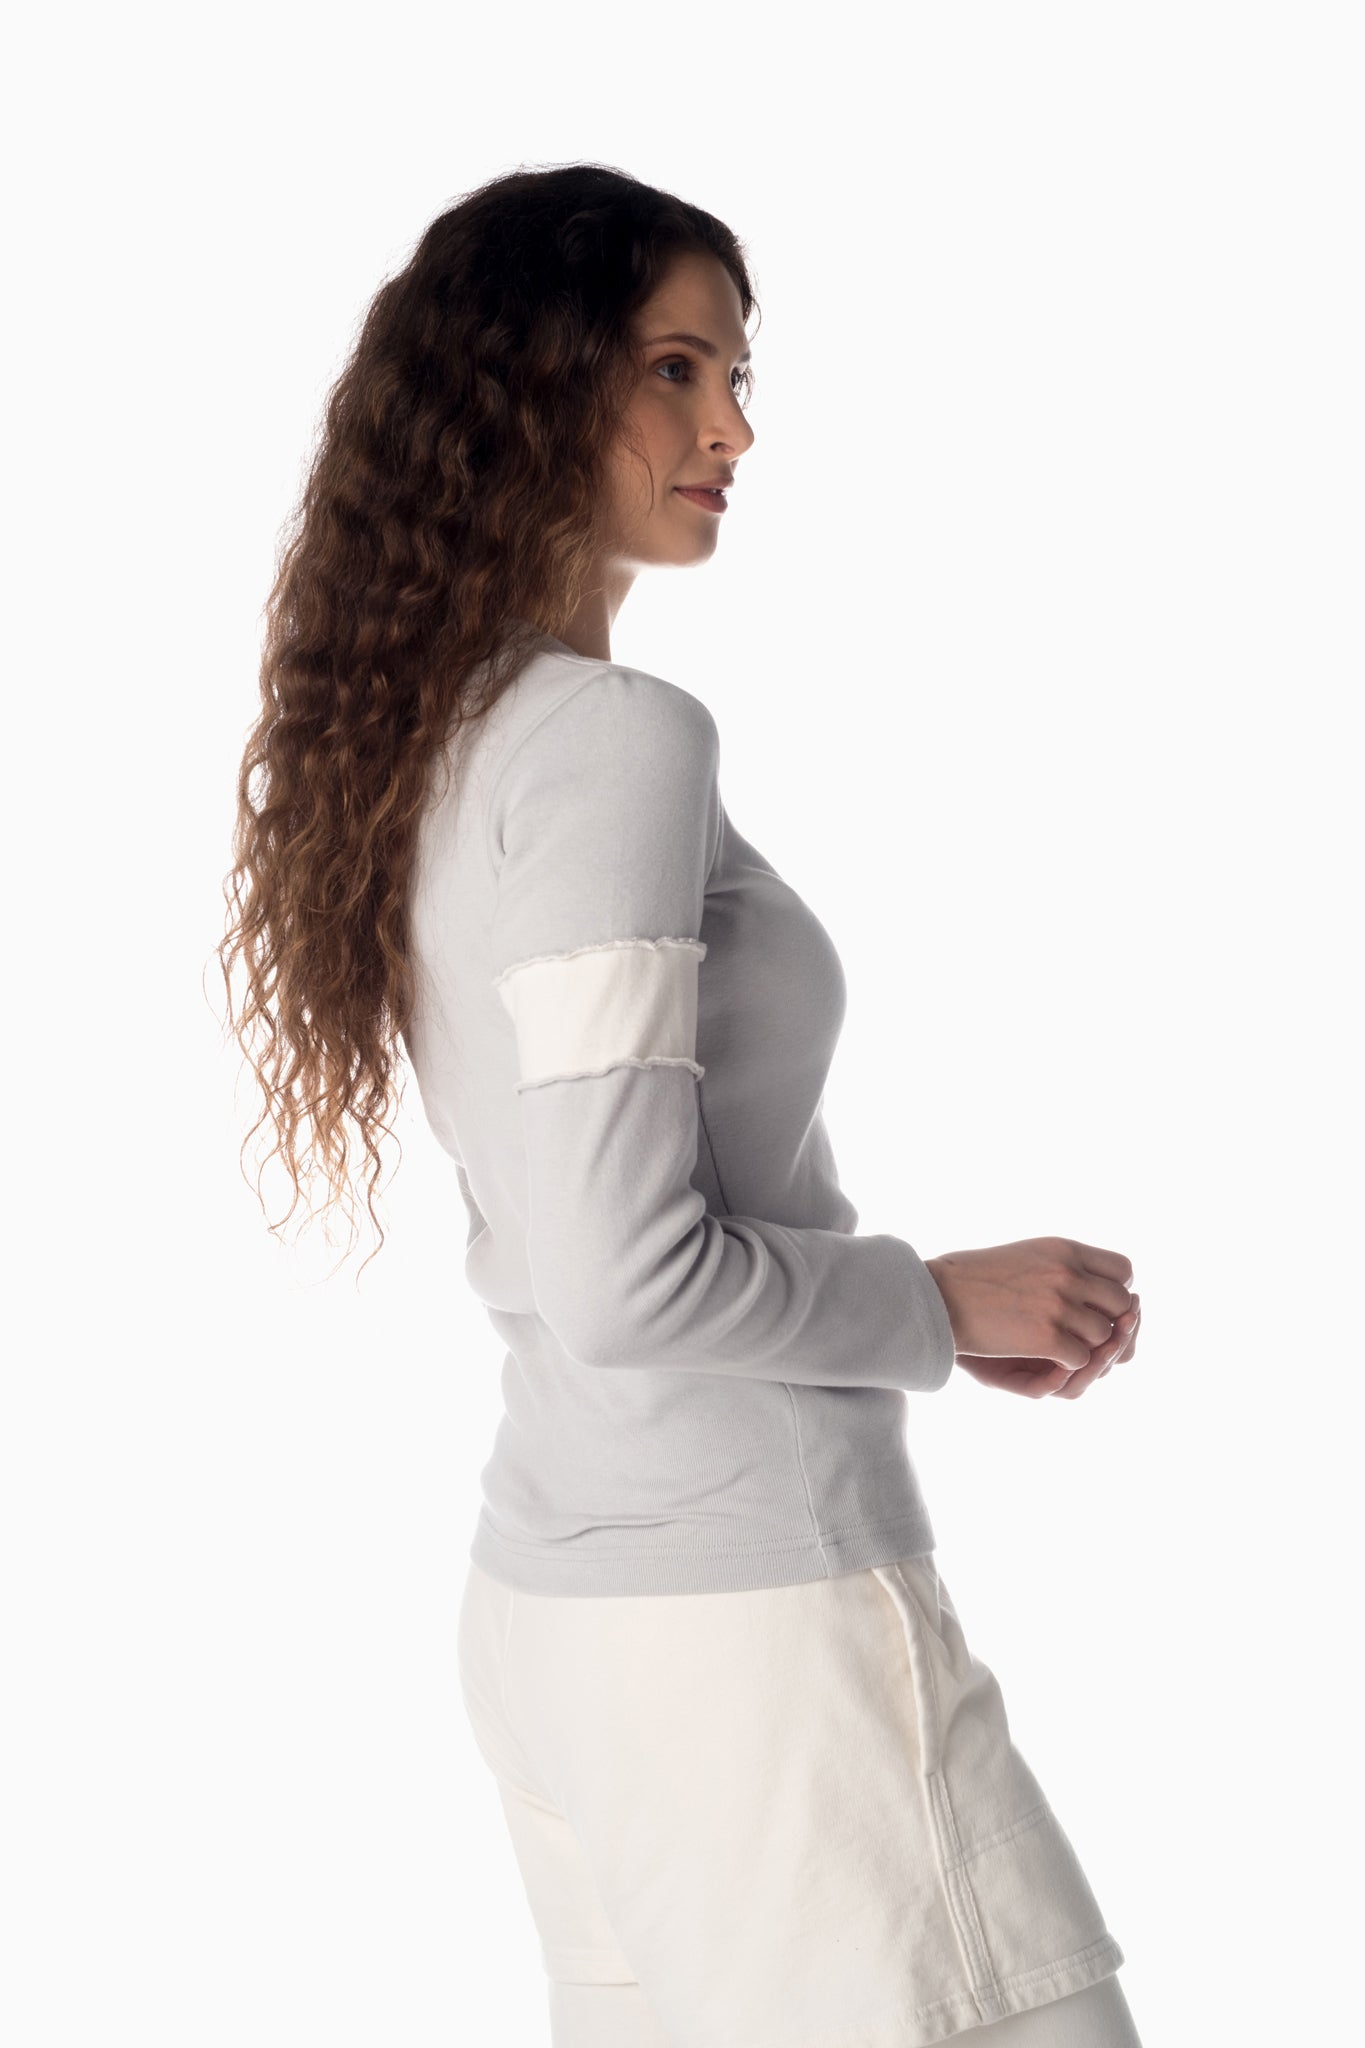 V-Neck & Accent Armband <br>Arctic Grey | Winter White Armband